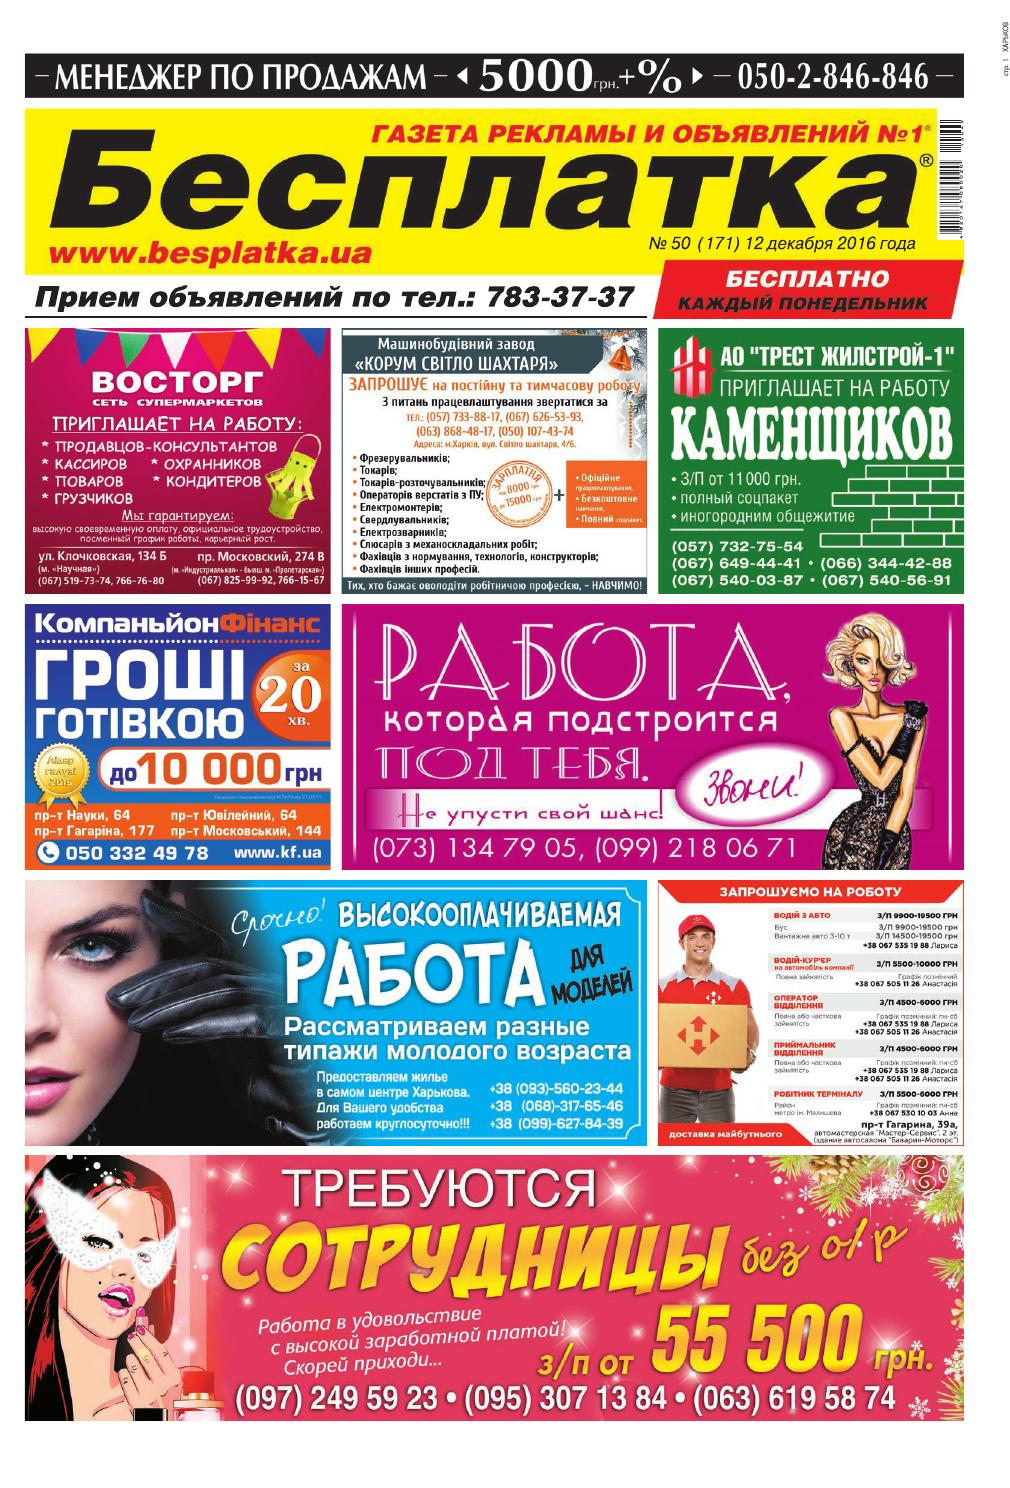 Besplatka  50 Харьков by besplatka ukraine - issuu c16092e754073